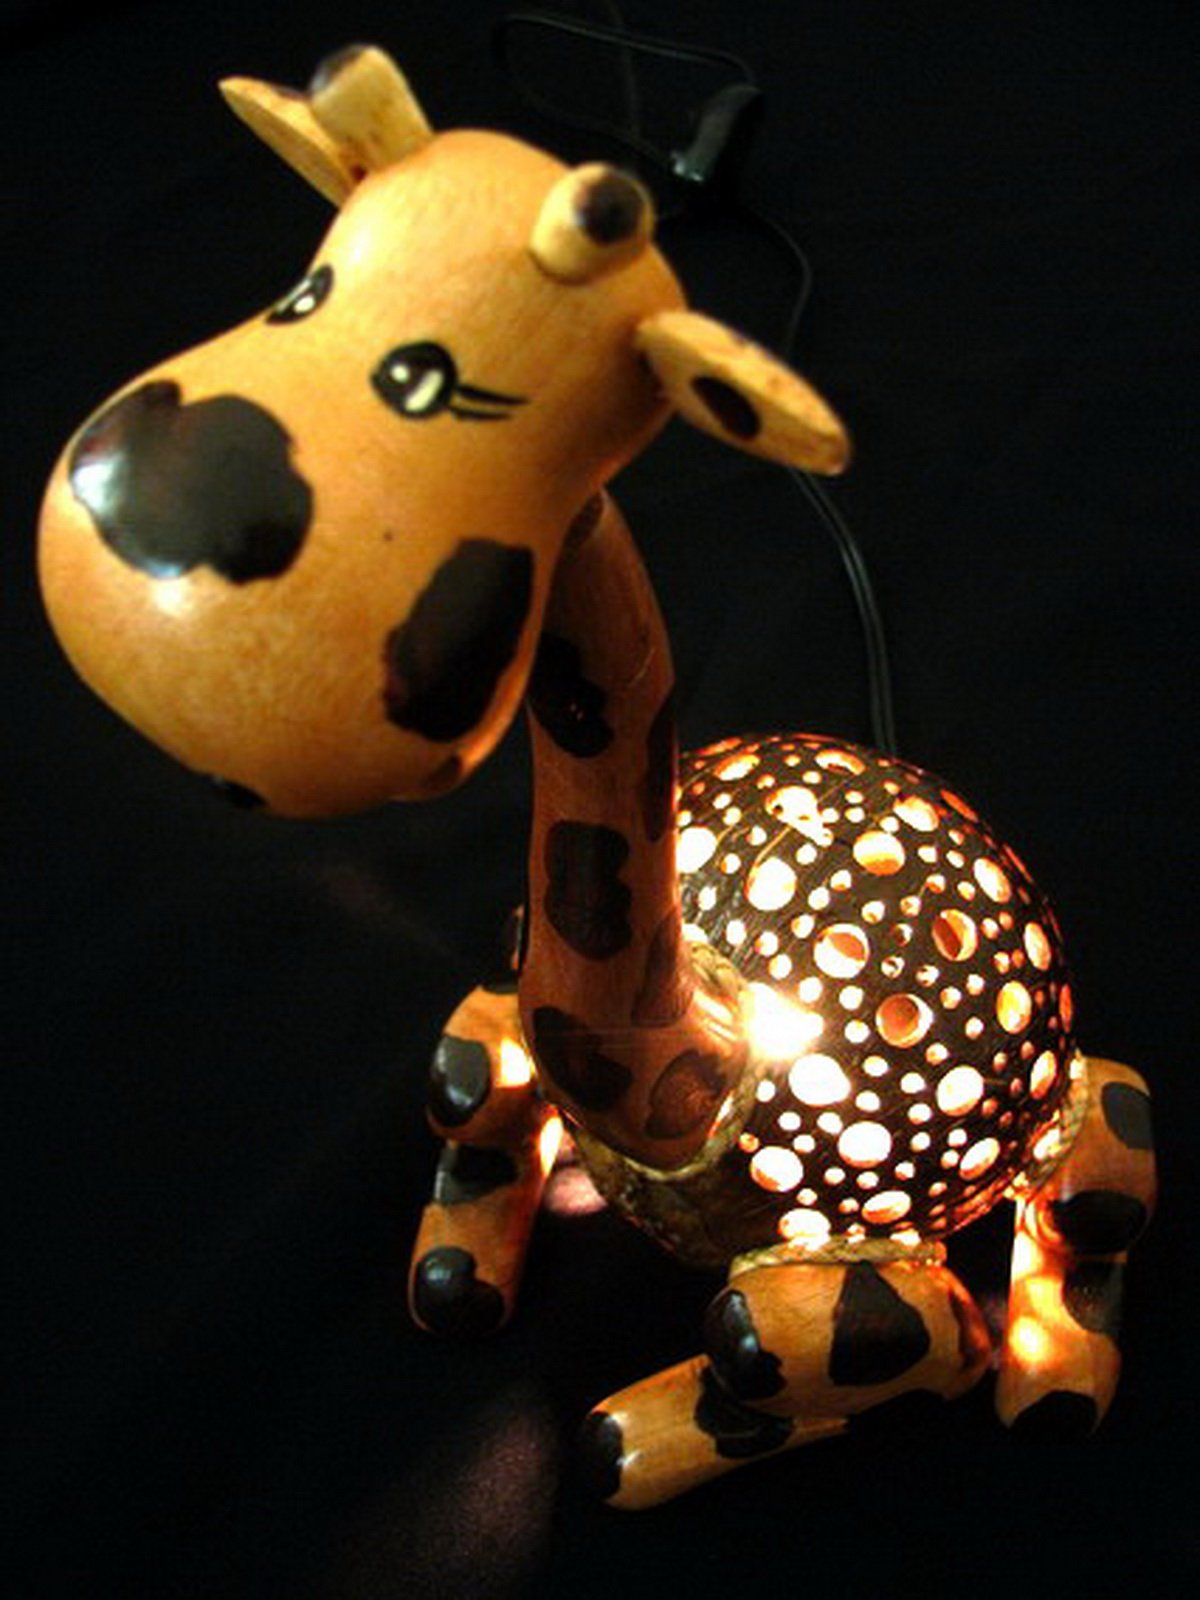 Coconut Shell Lamp - Giraffe Lamp 10'' Height - Wooden Crafts Handmade of Thailand Craftsman by Thailand Gifts Shop (Image #3)